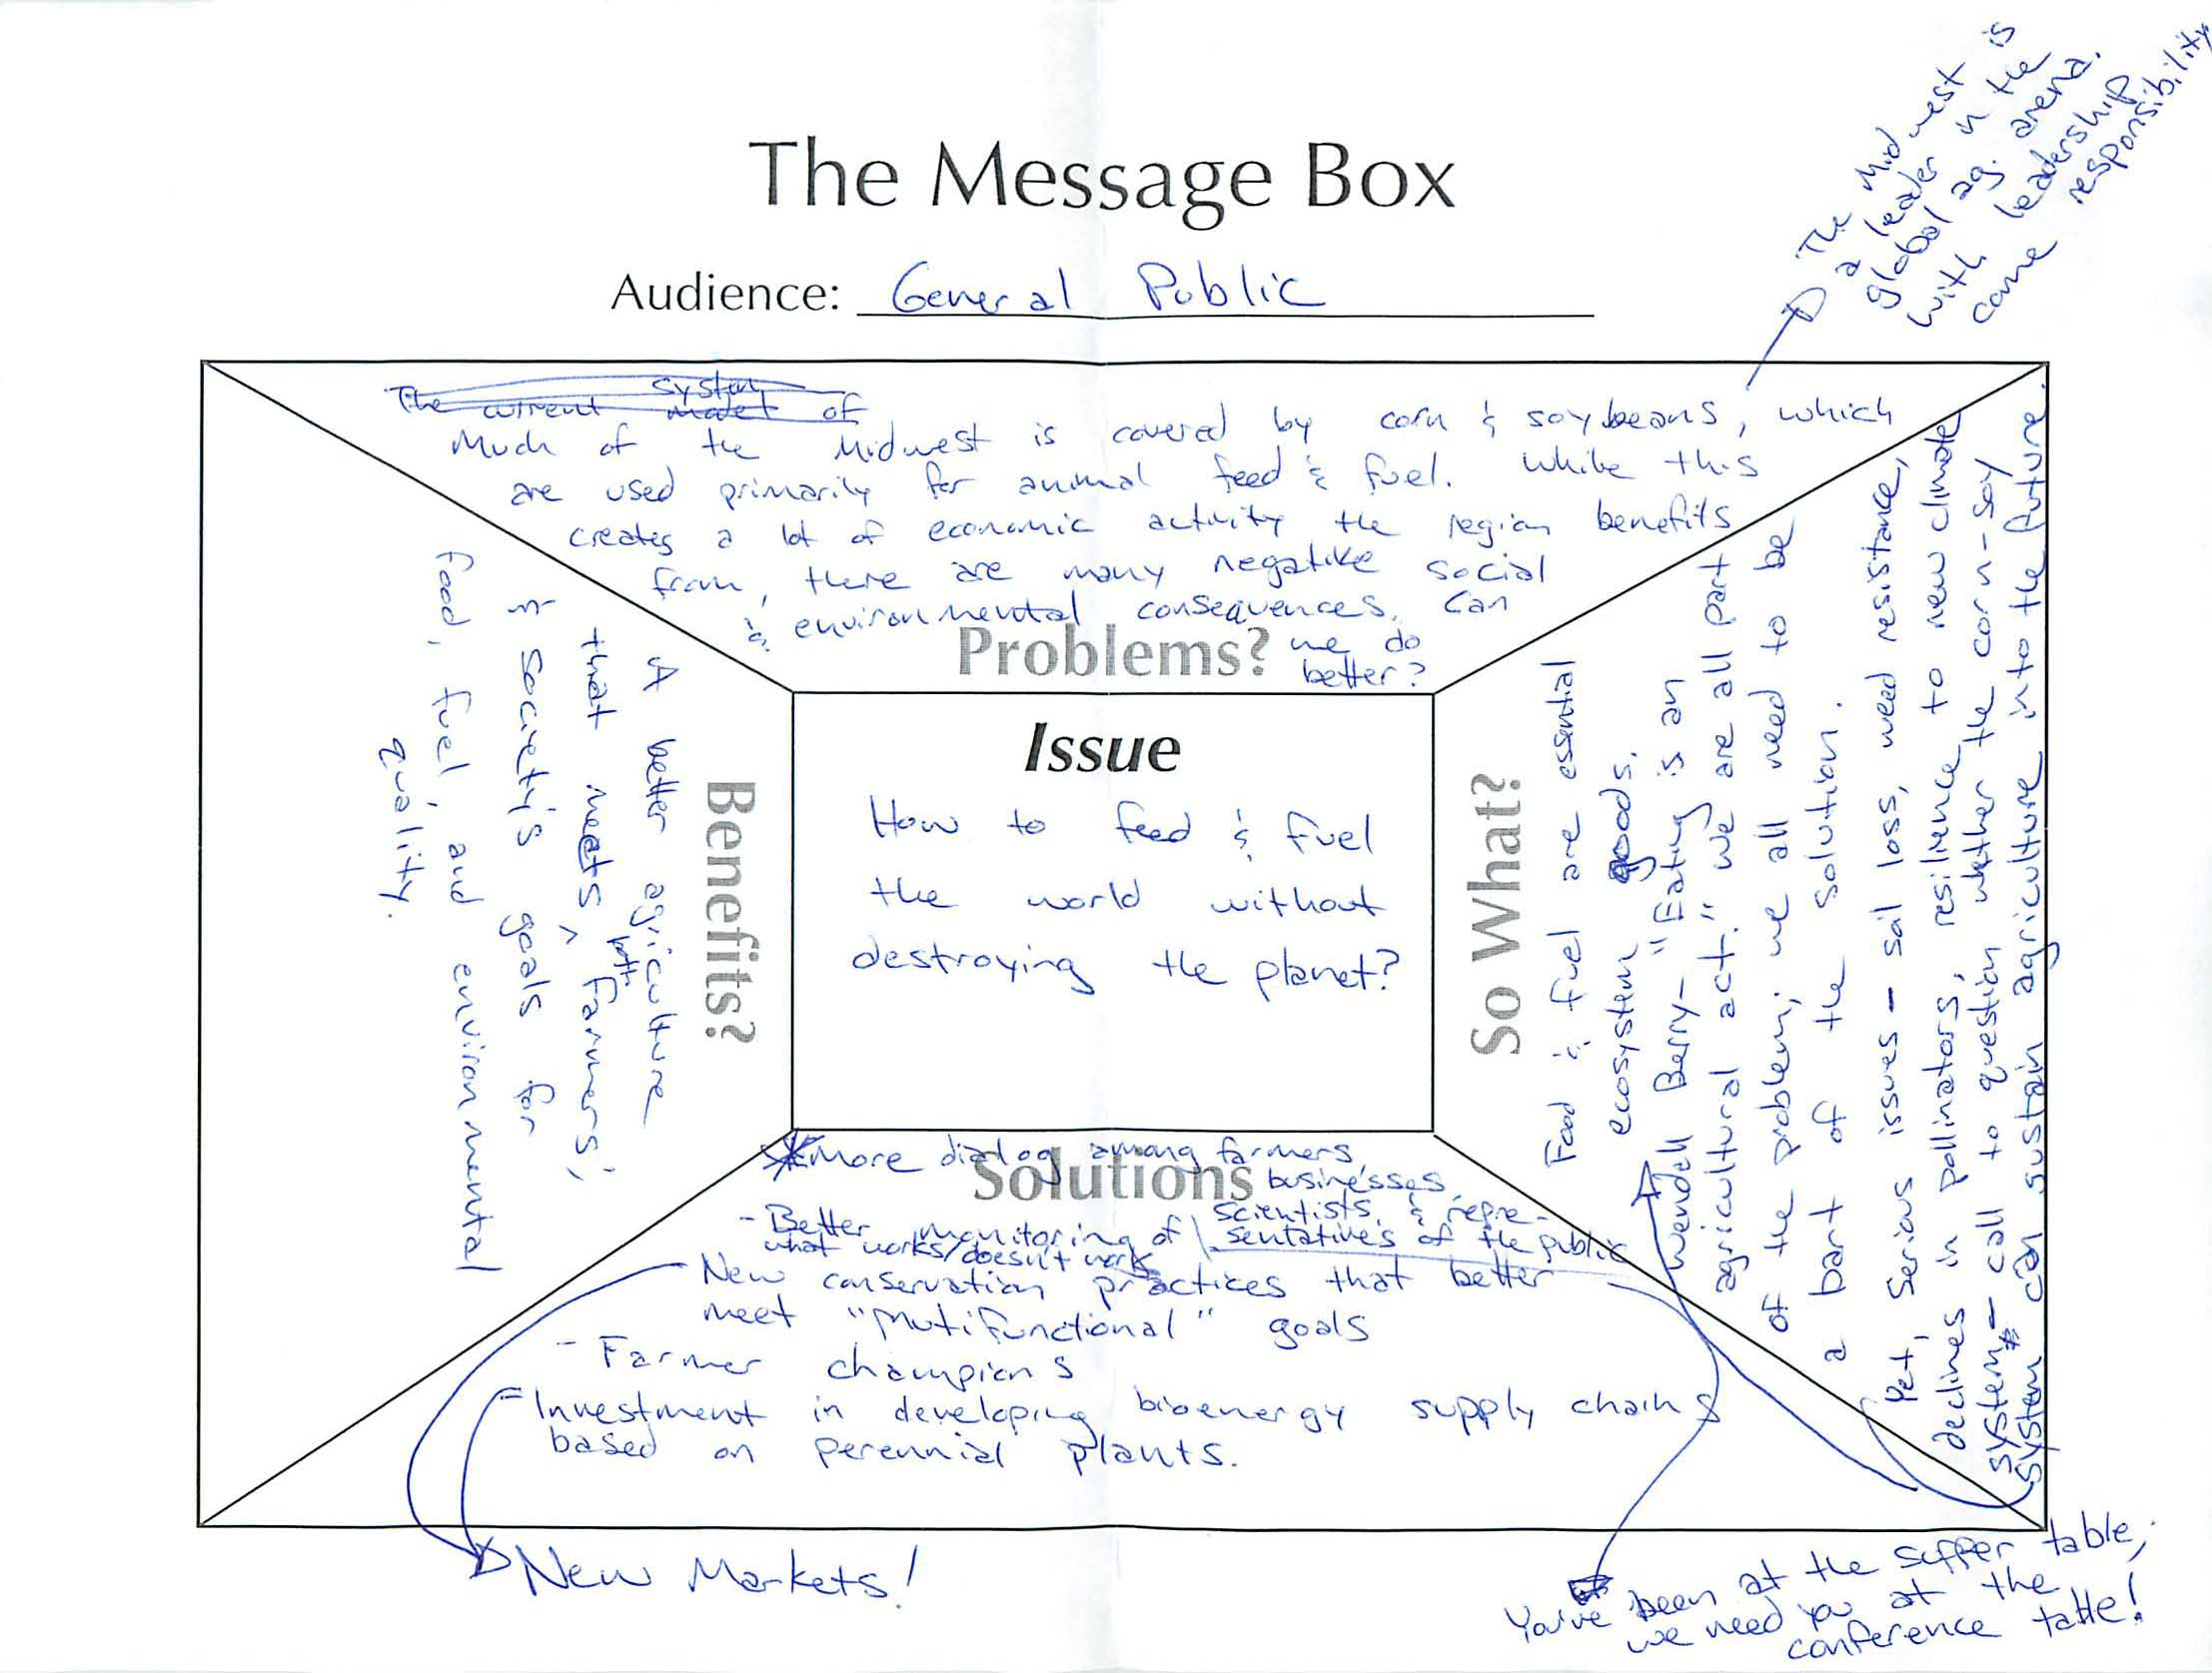 Lisa Schulte Moore's Leopold-style message box